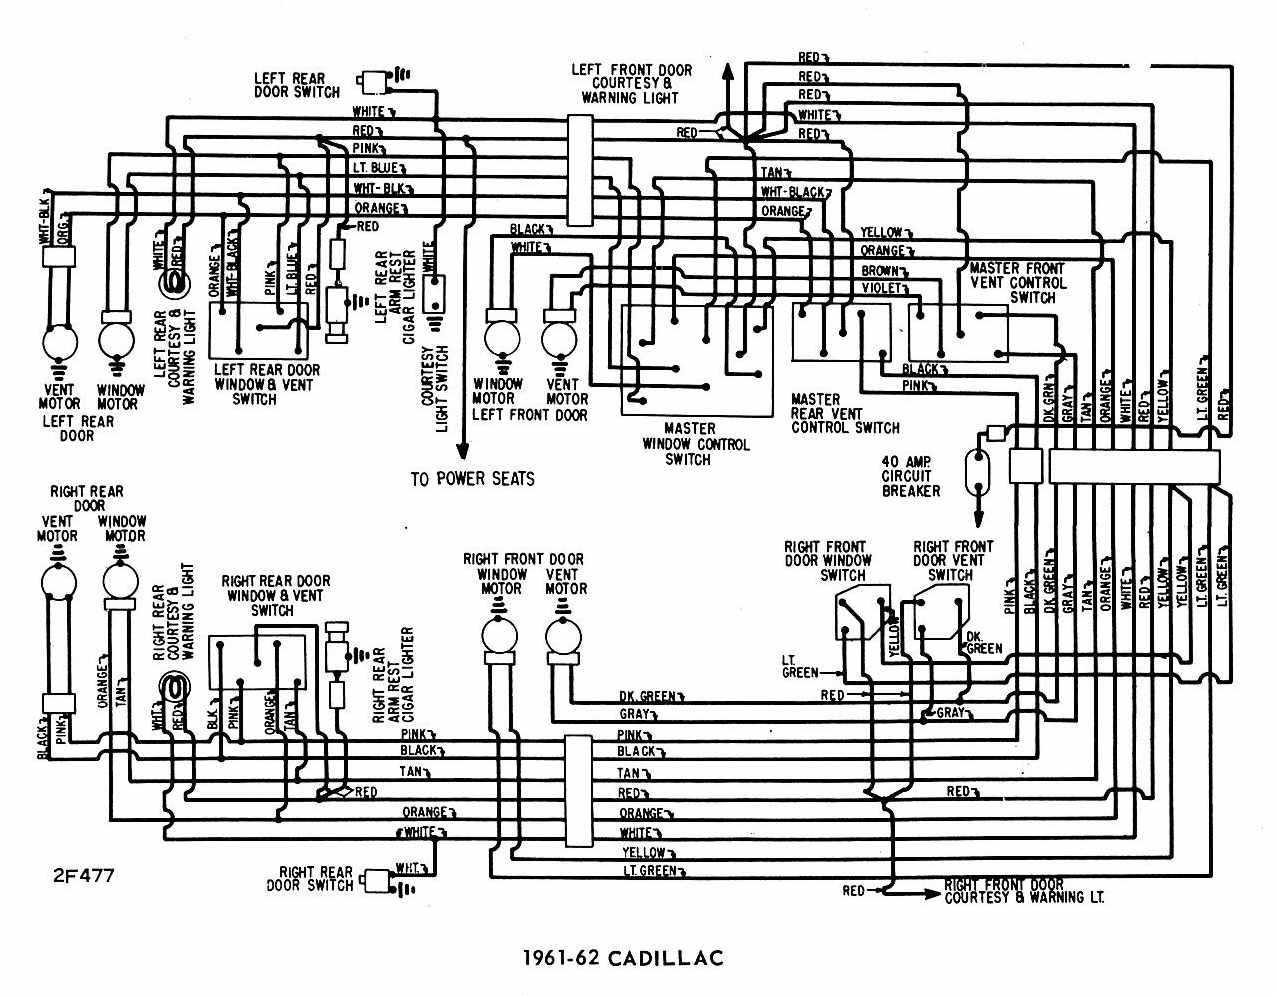 1994 Buick Lesabre Wiring Diagram Free Picture Library 92 Century Cadillac Engine Vehicle Diagrams U2022 Rh Generalinfo Co 2003 Cts